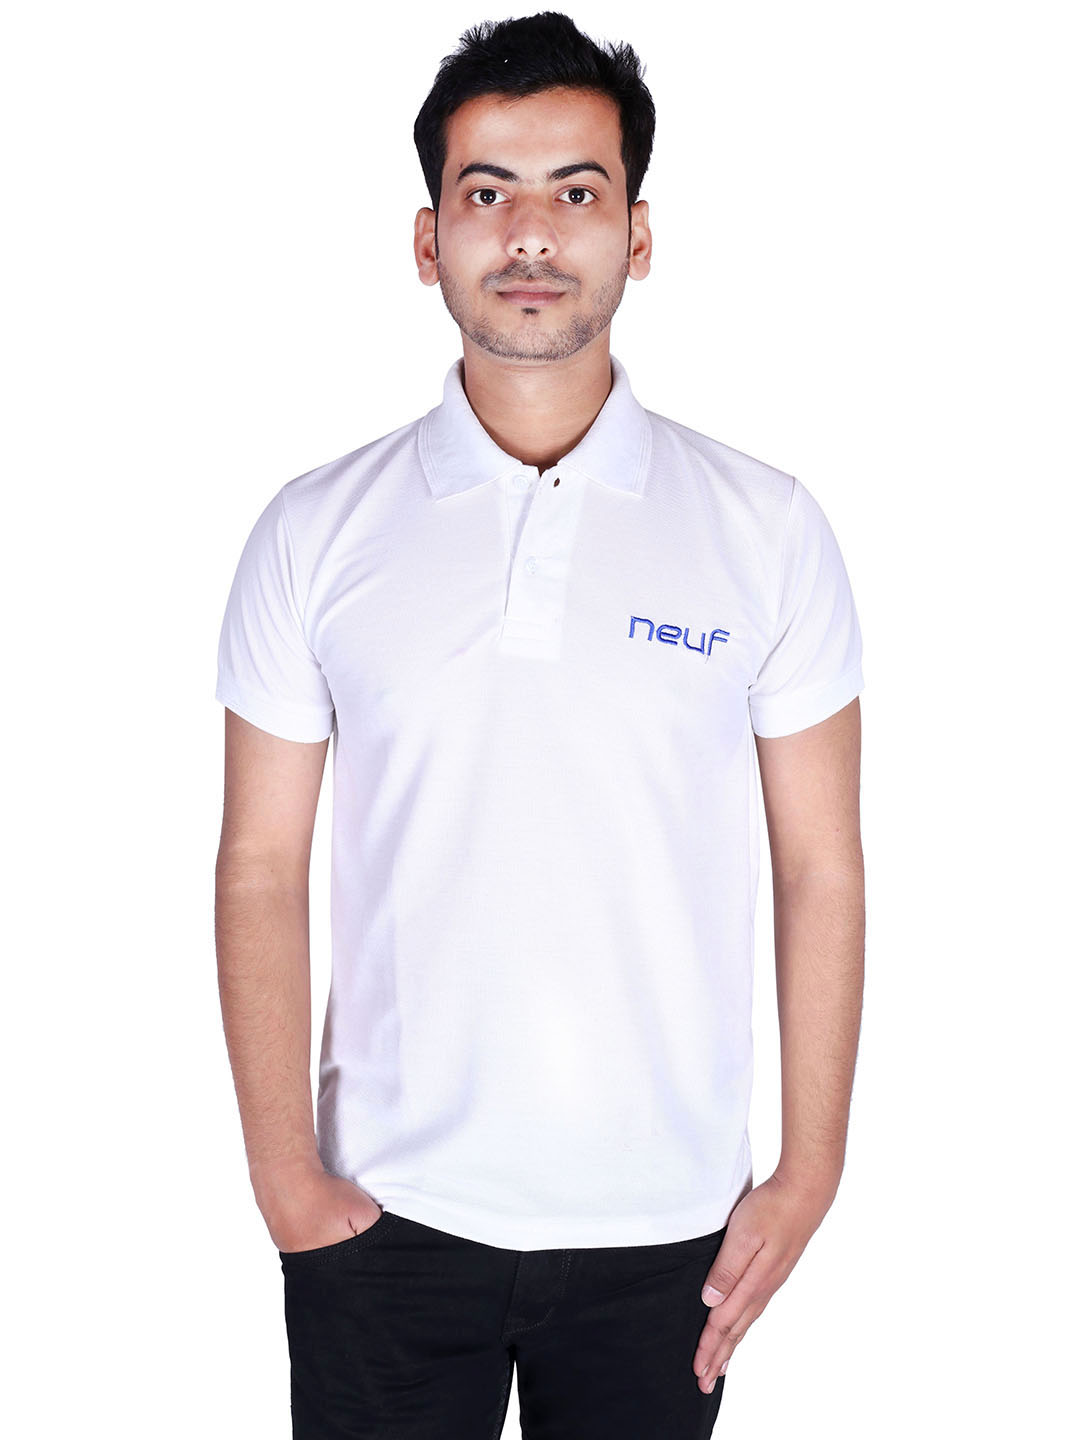 triplemart Solid White Polo Men`s T-shirt